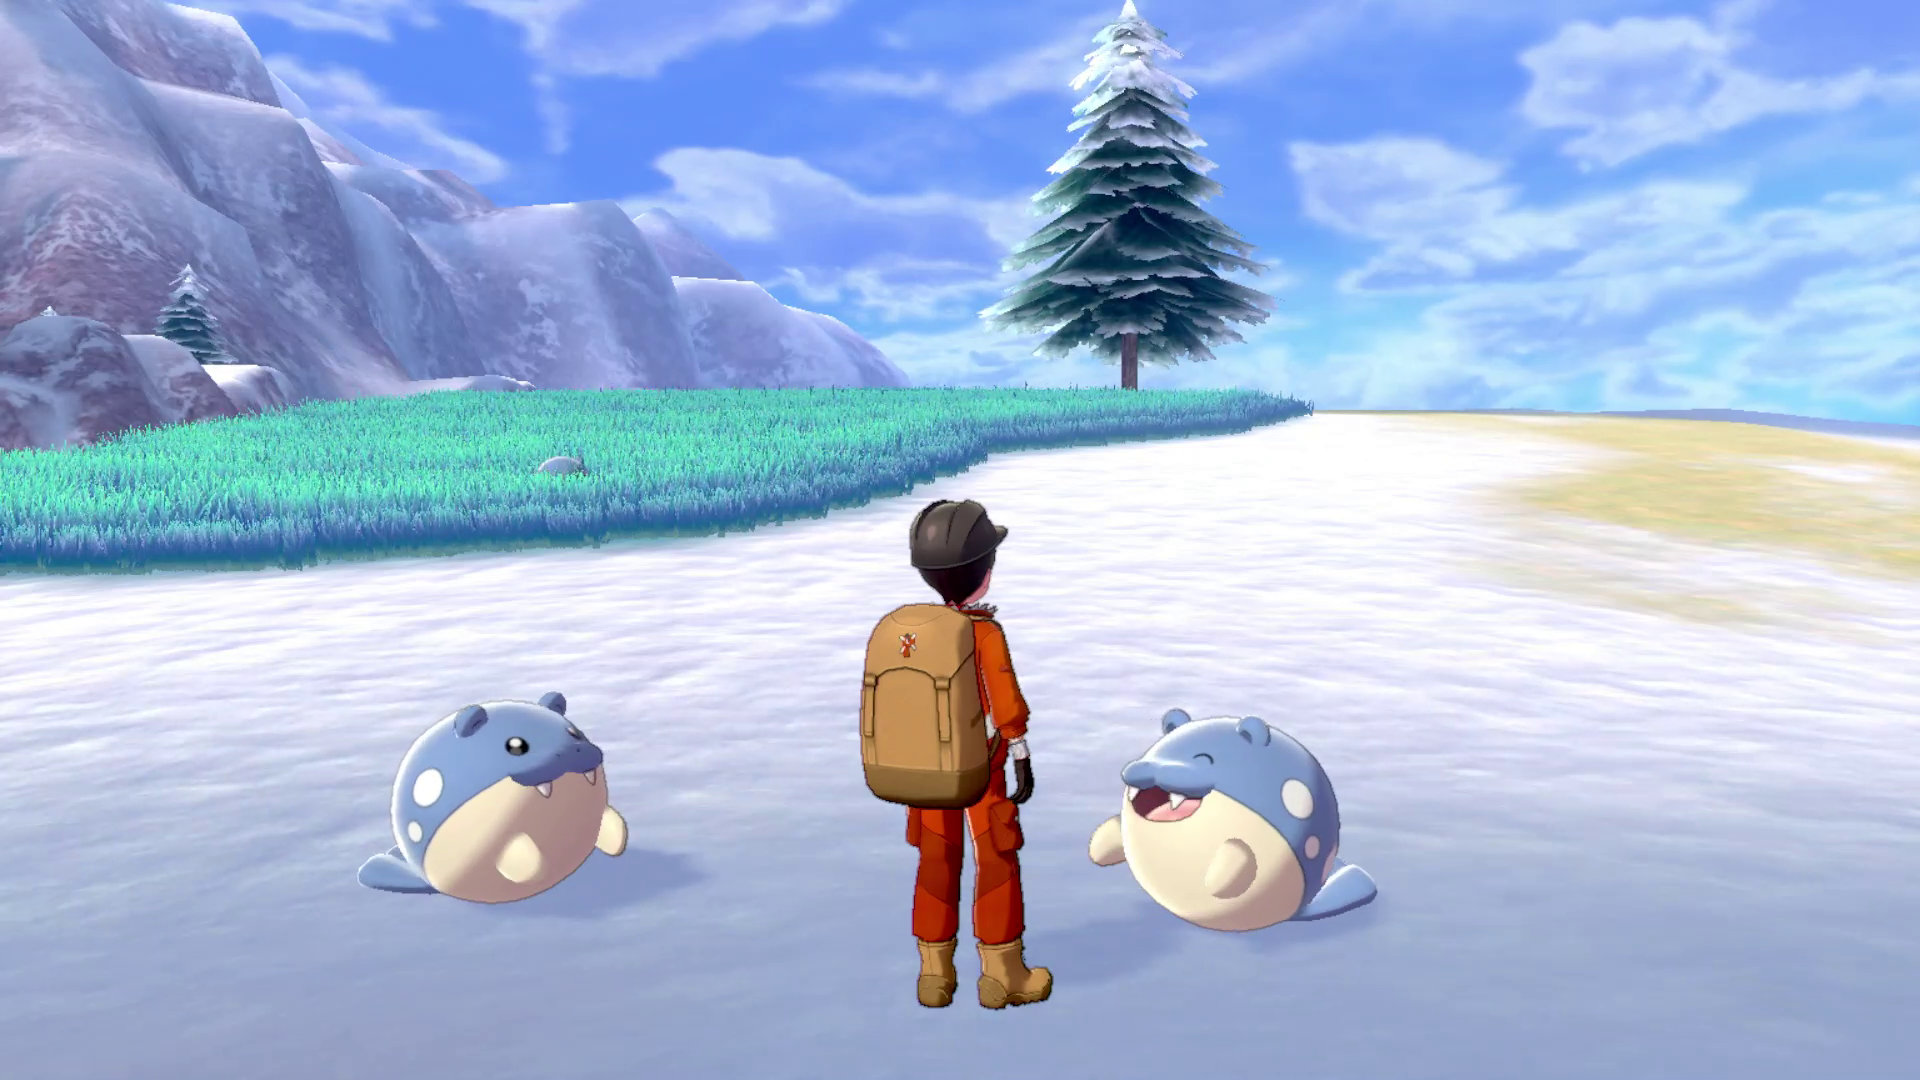 Screenshot From Pokemon Sword And Shield Featuring Spheal, Who Is Objectively The Best Pokemon Sorry Not Sorry I Dont Make The Rules